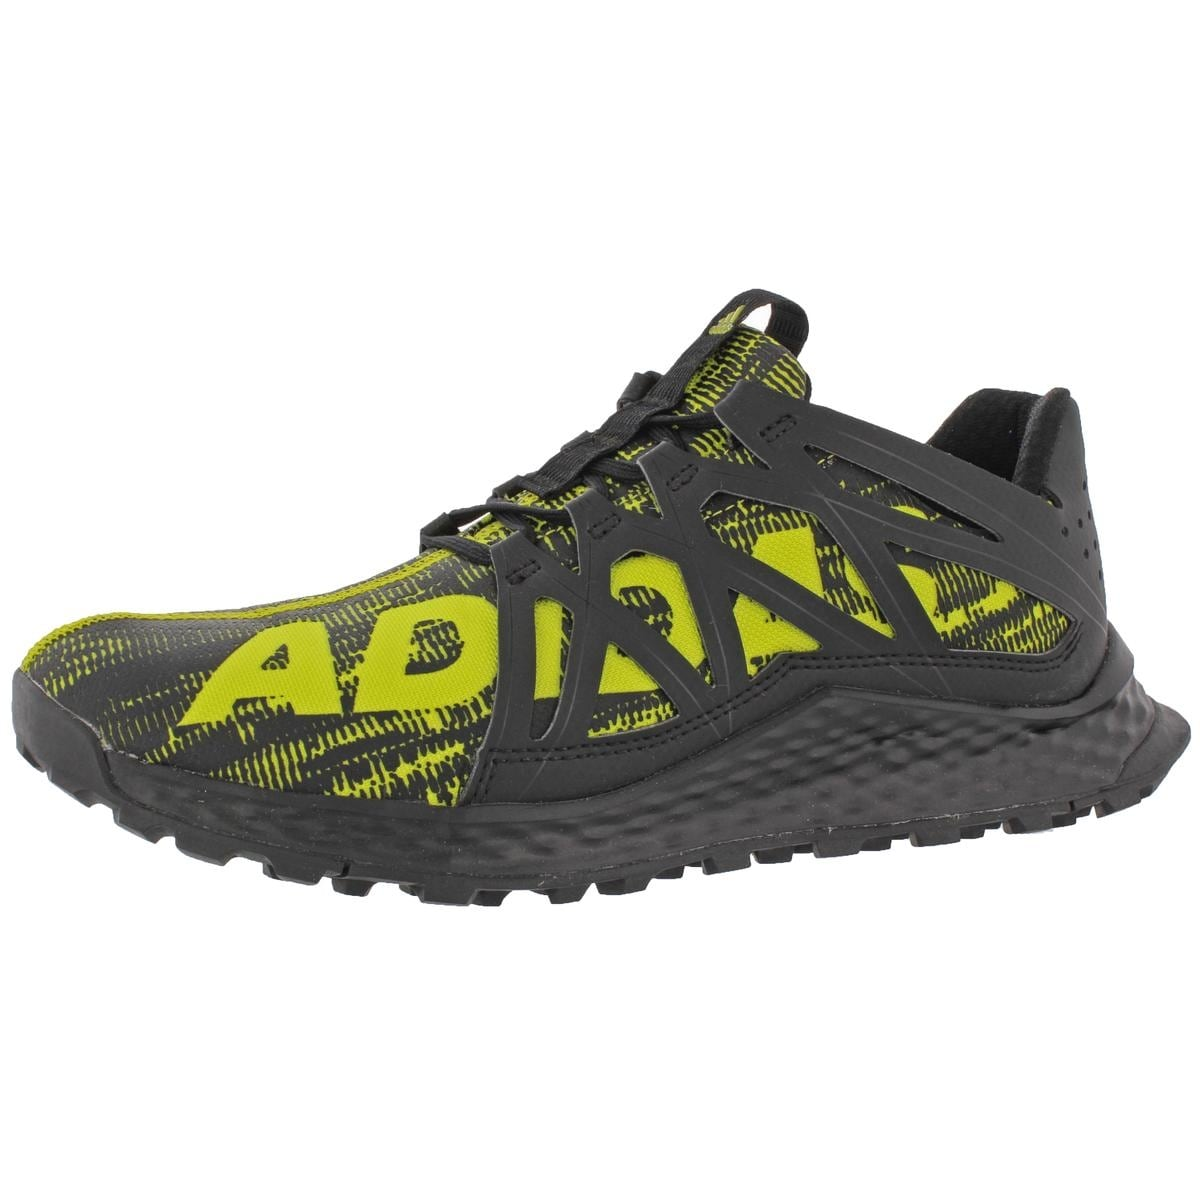 0bf37f8577f1 Shop Adidas Boys Vigor Bounce Running Shoes Padded Insole Athletic ...